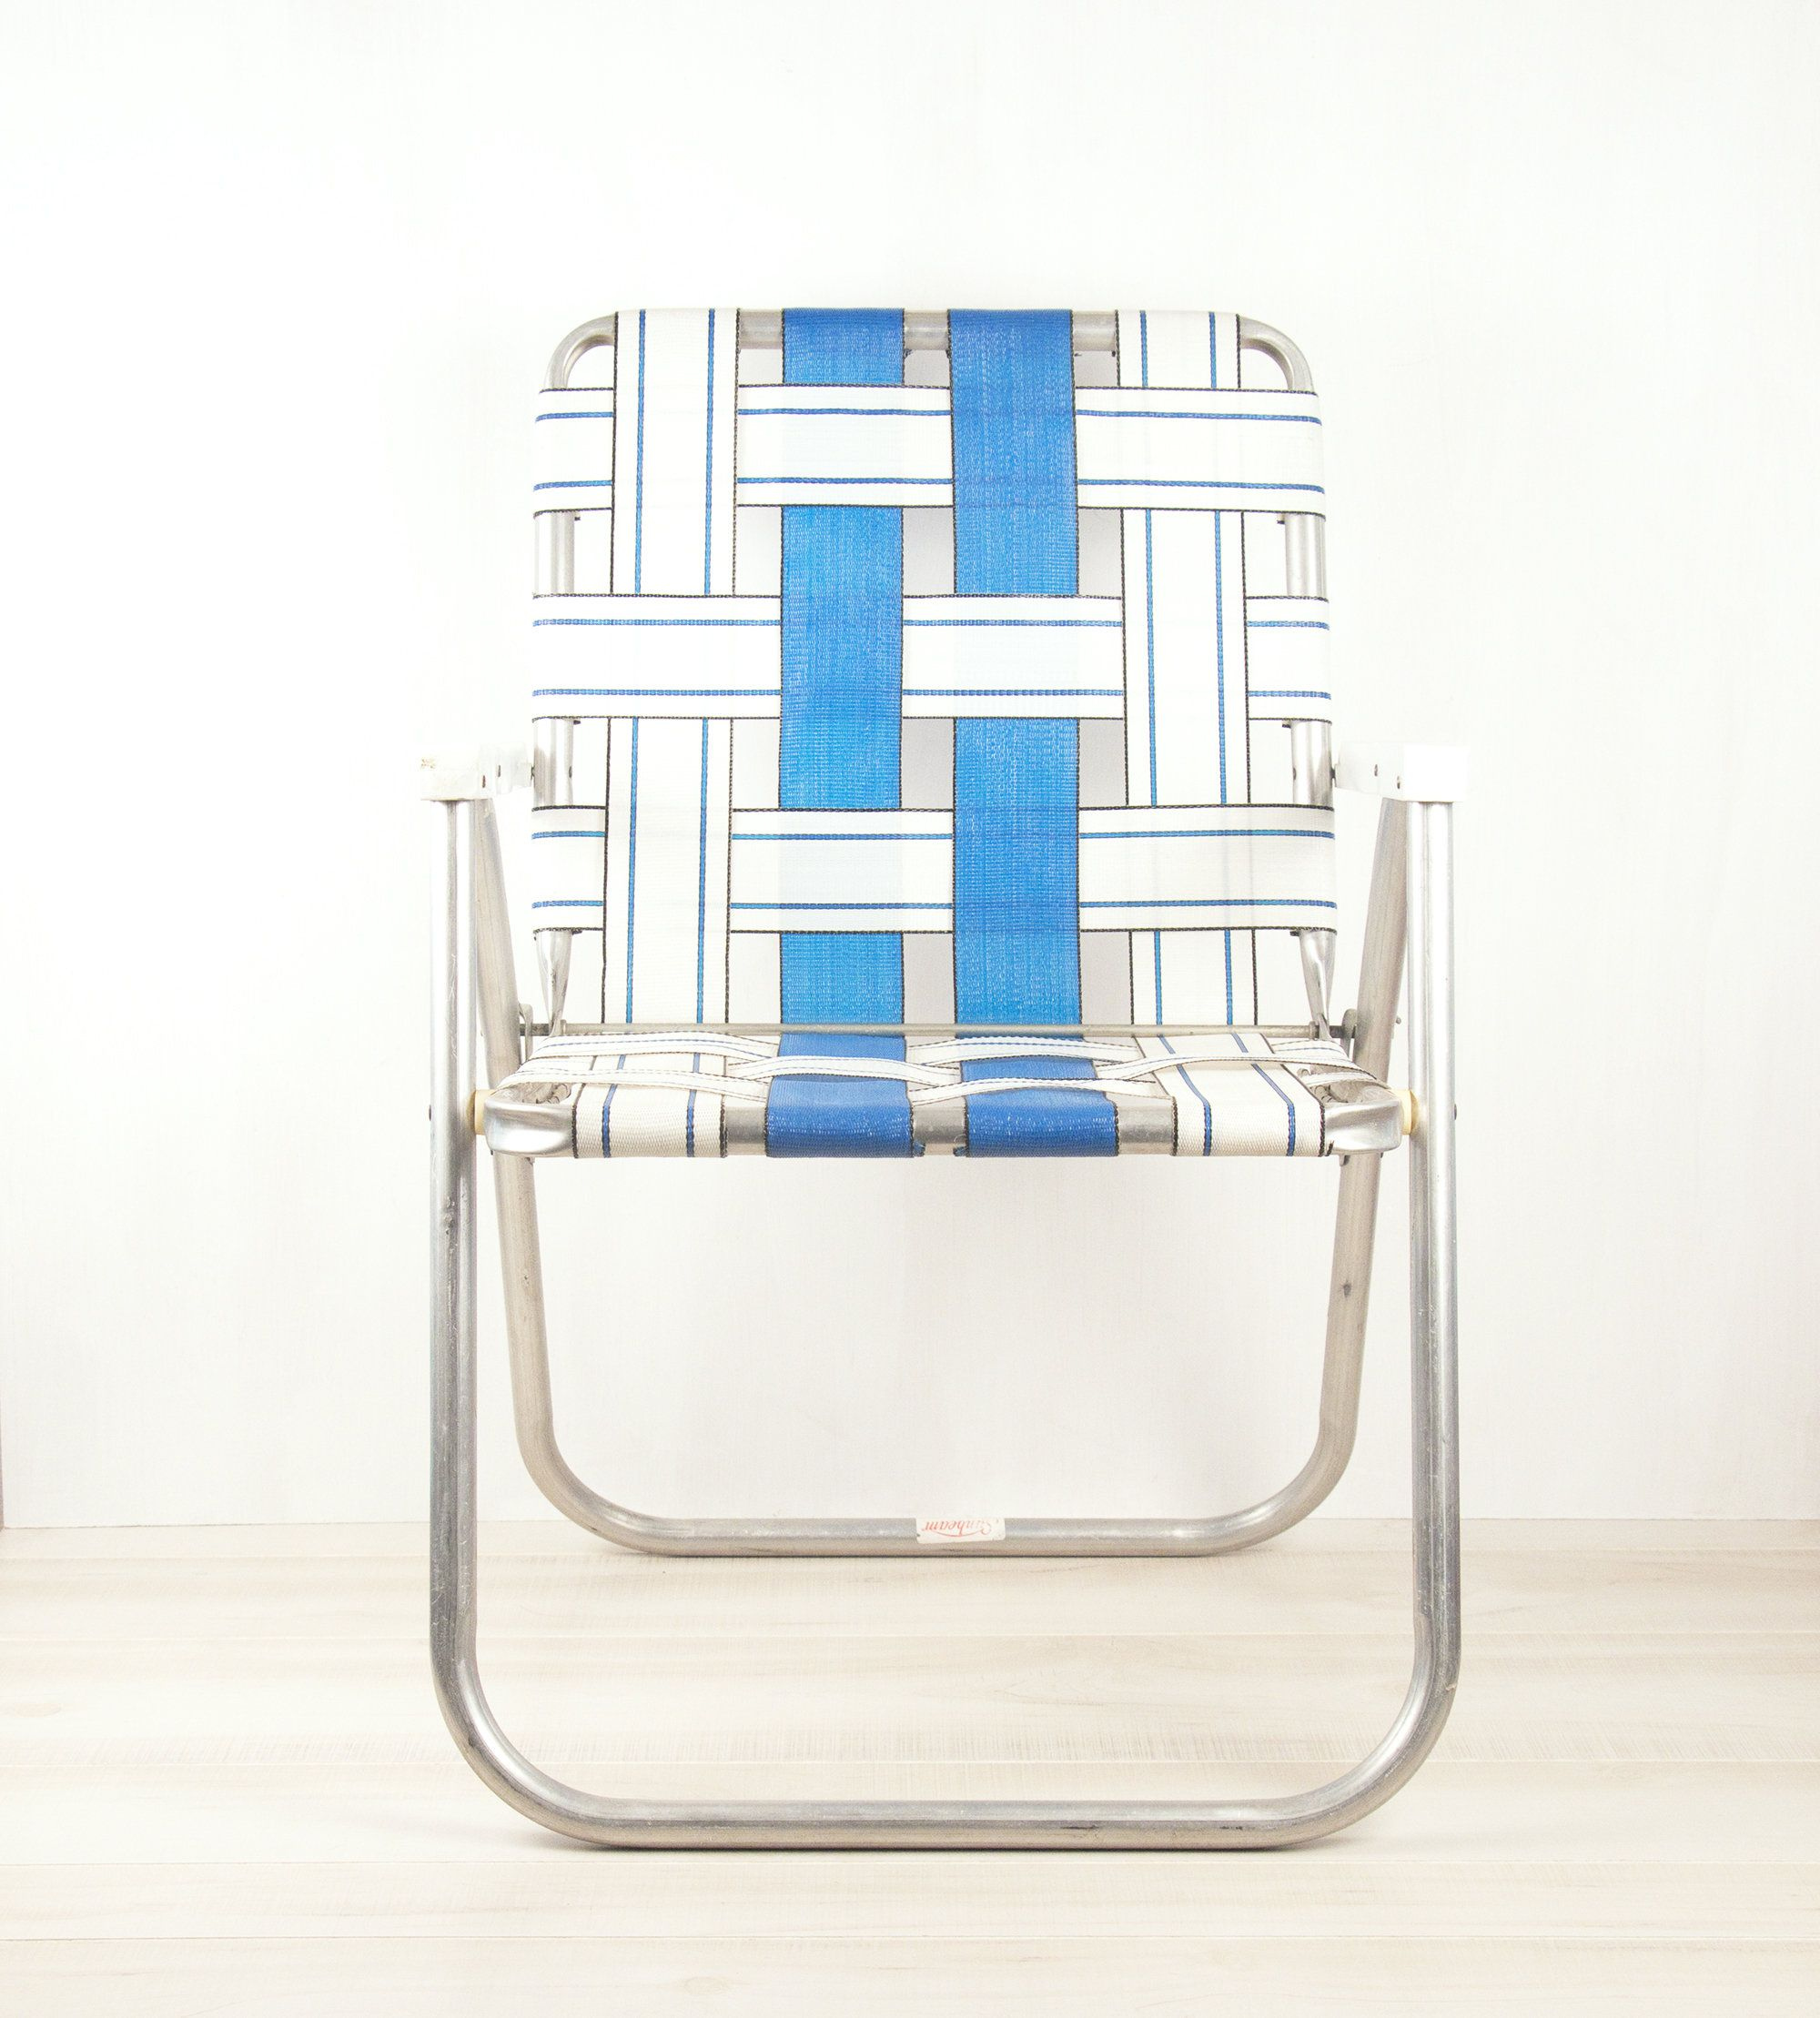 Marvelous Aluminum Webbed Folding Lawn Chair Blue Pink Green Caraccident5 Cool Chair Designs And Ideas Caraccident5Info